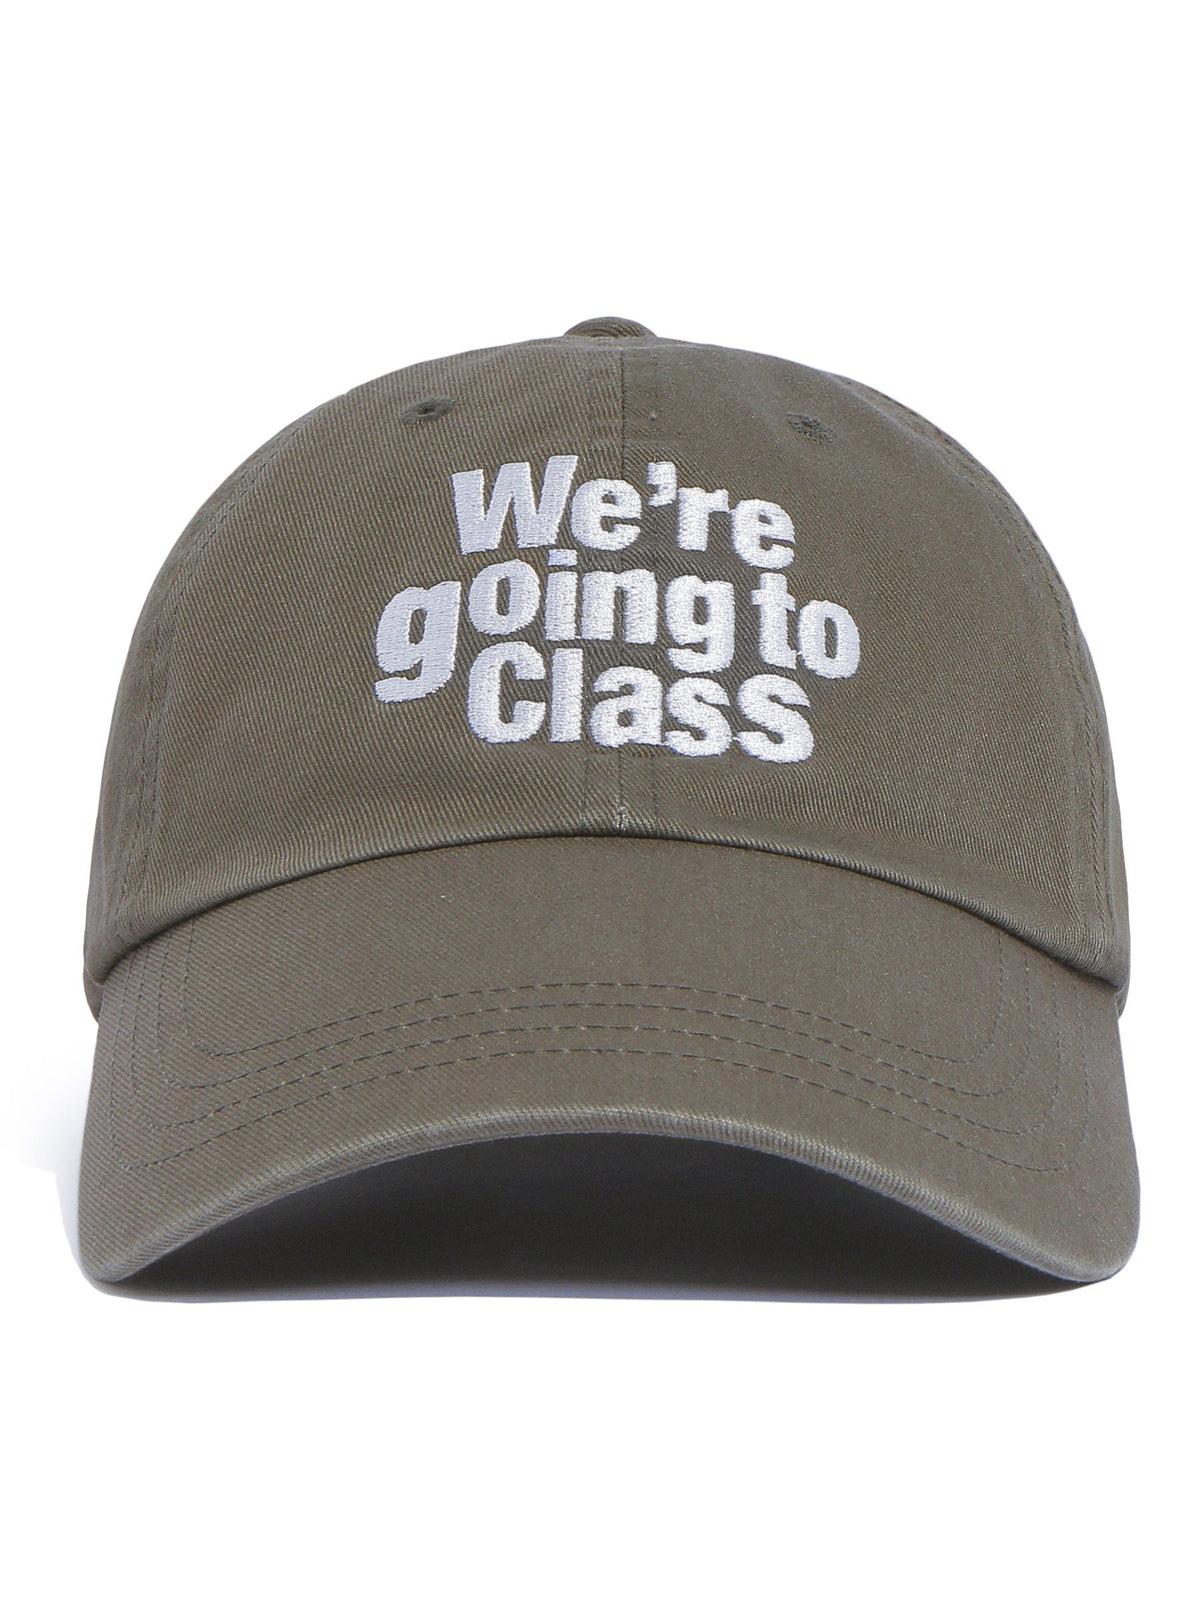 GOING TO CLASS Cap - thisisneverthat